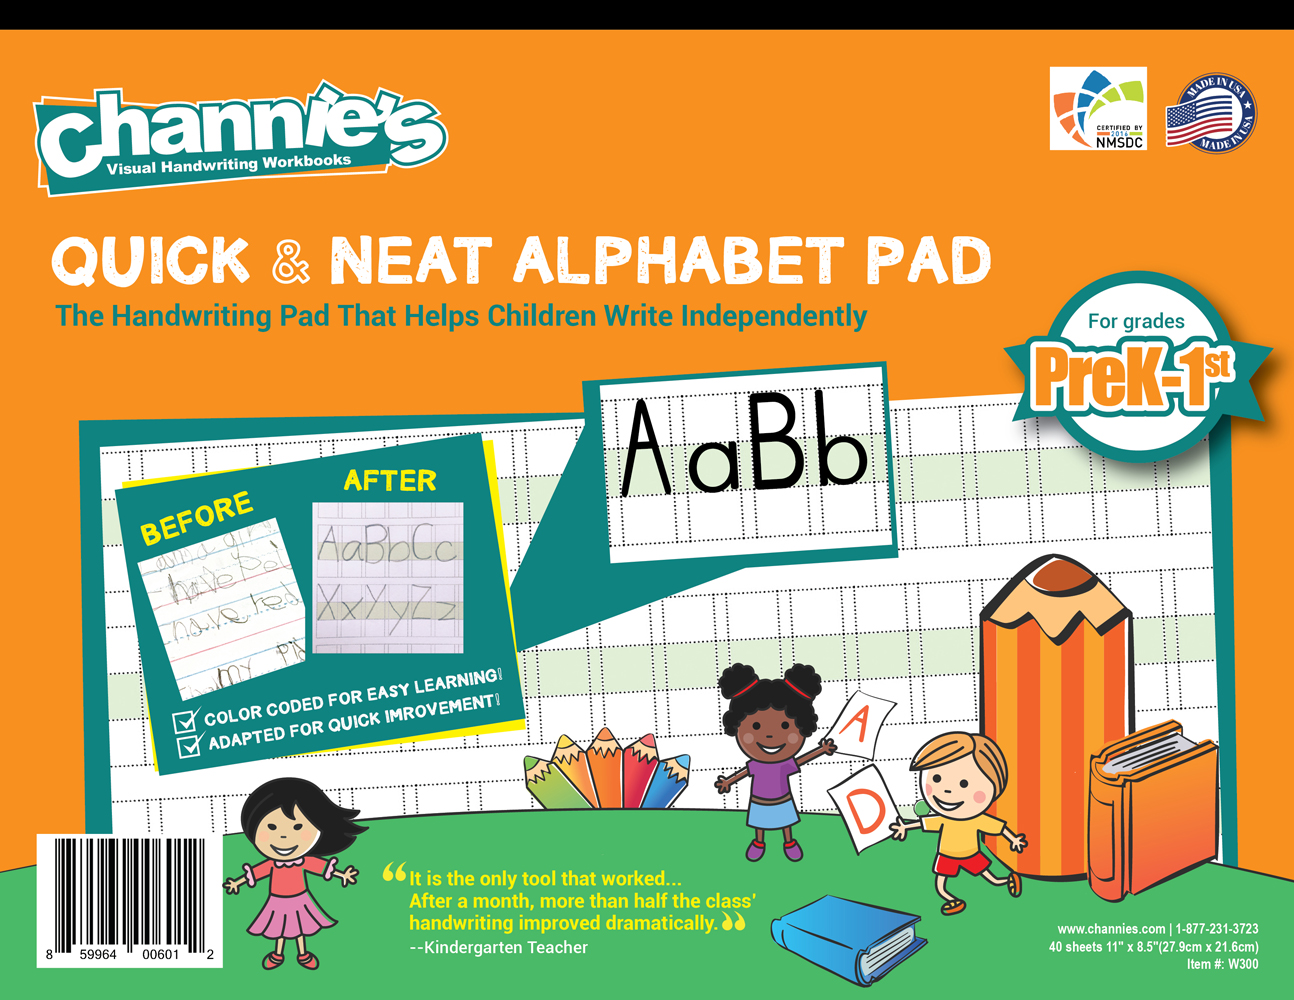 Channies_PreK1st_Cover-01